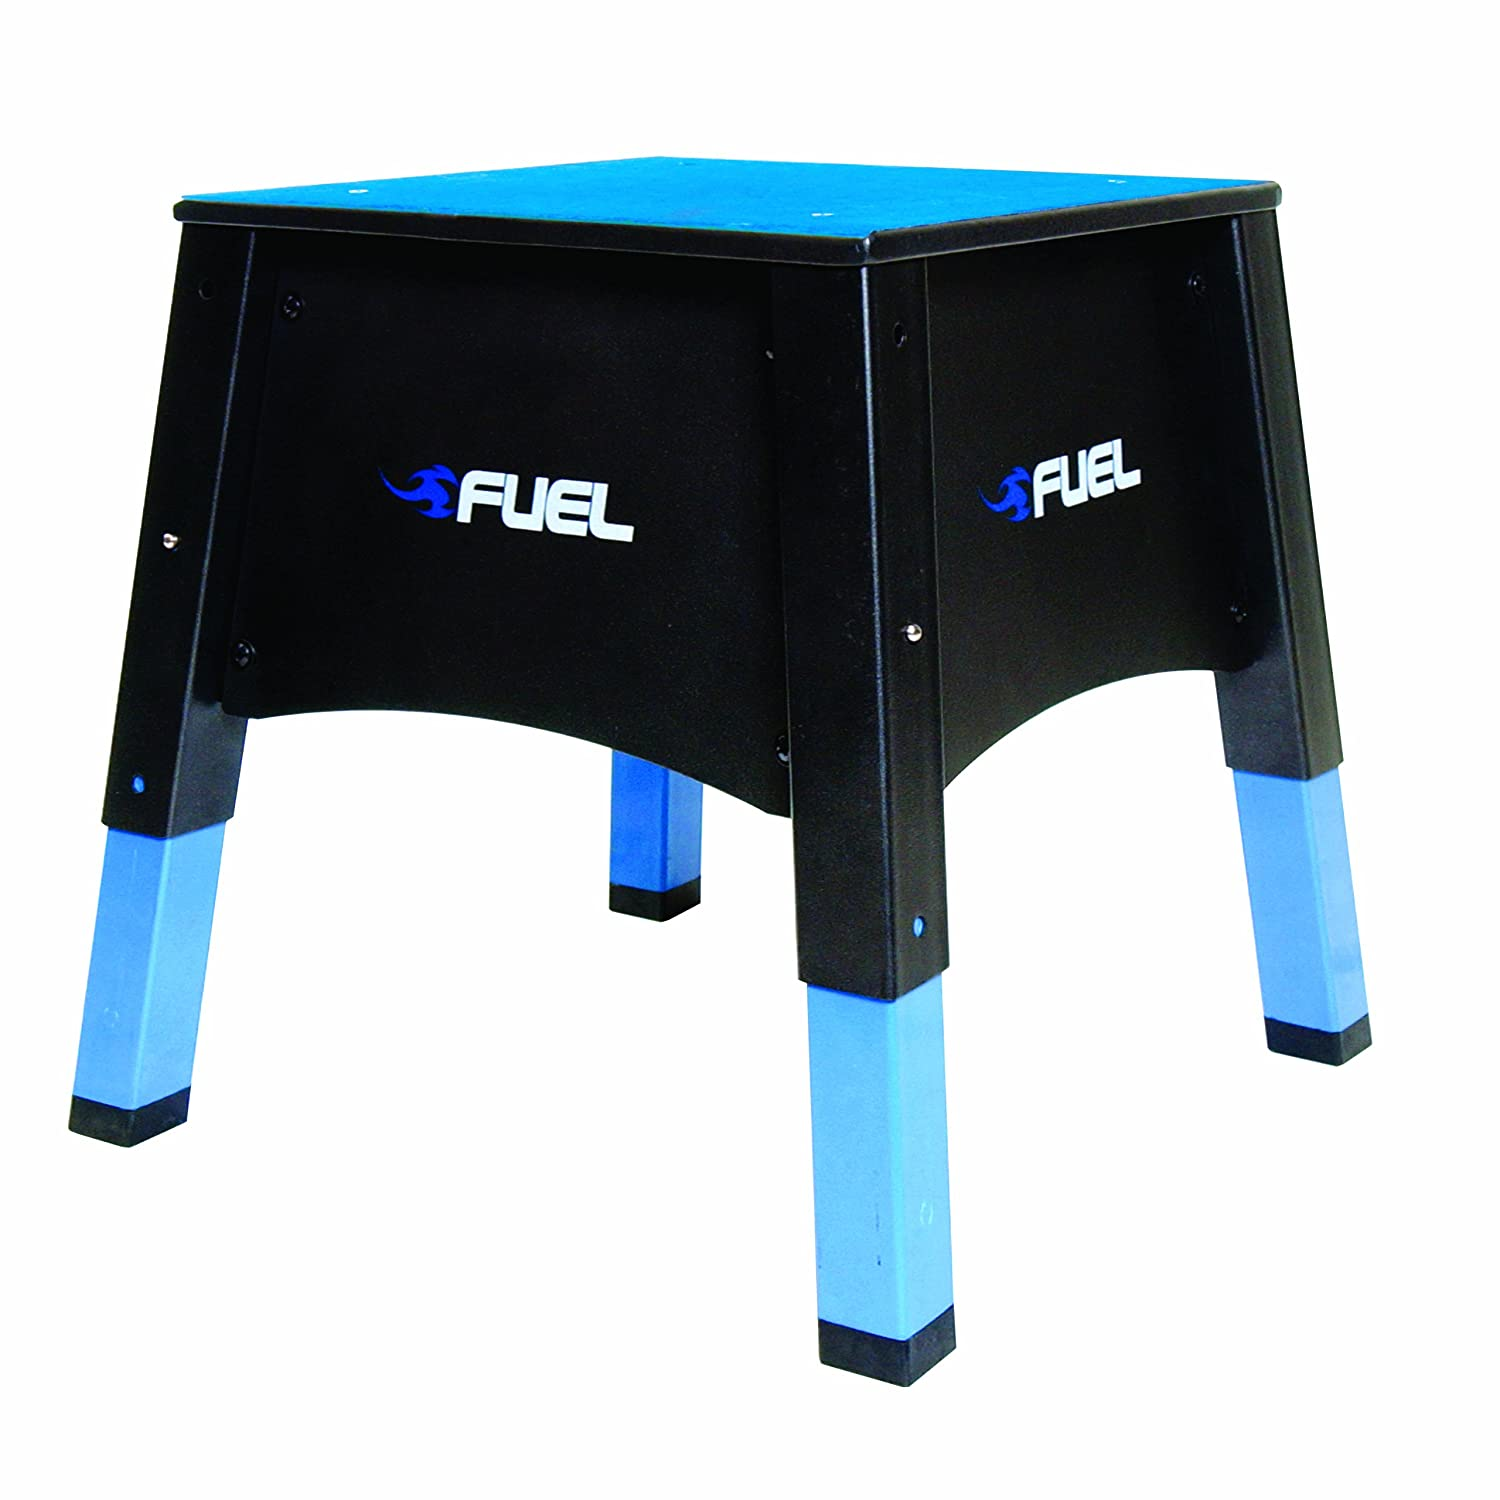 Fuel Performance Adjustable Plyo Box